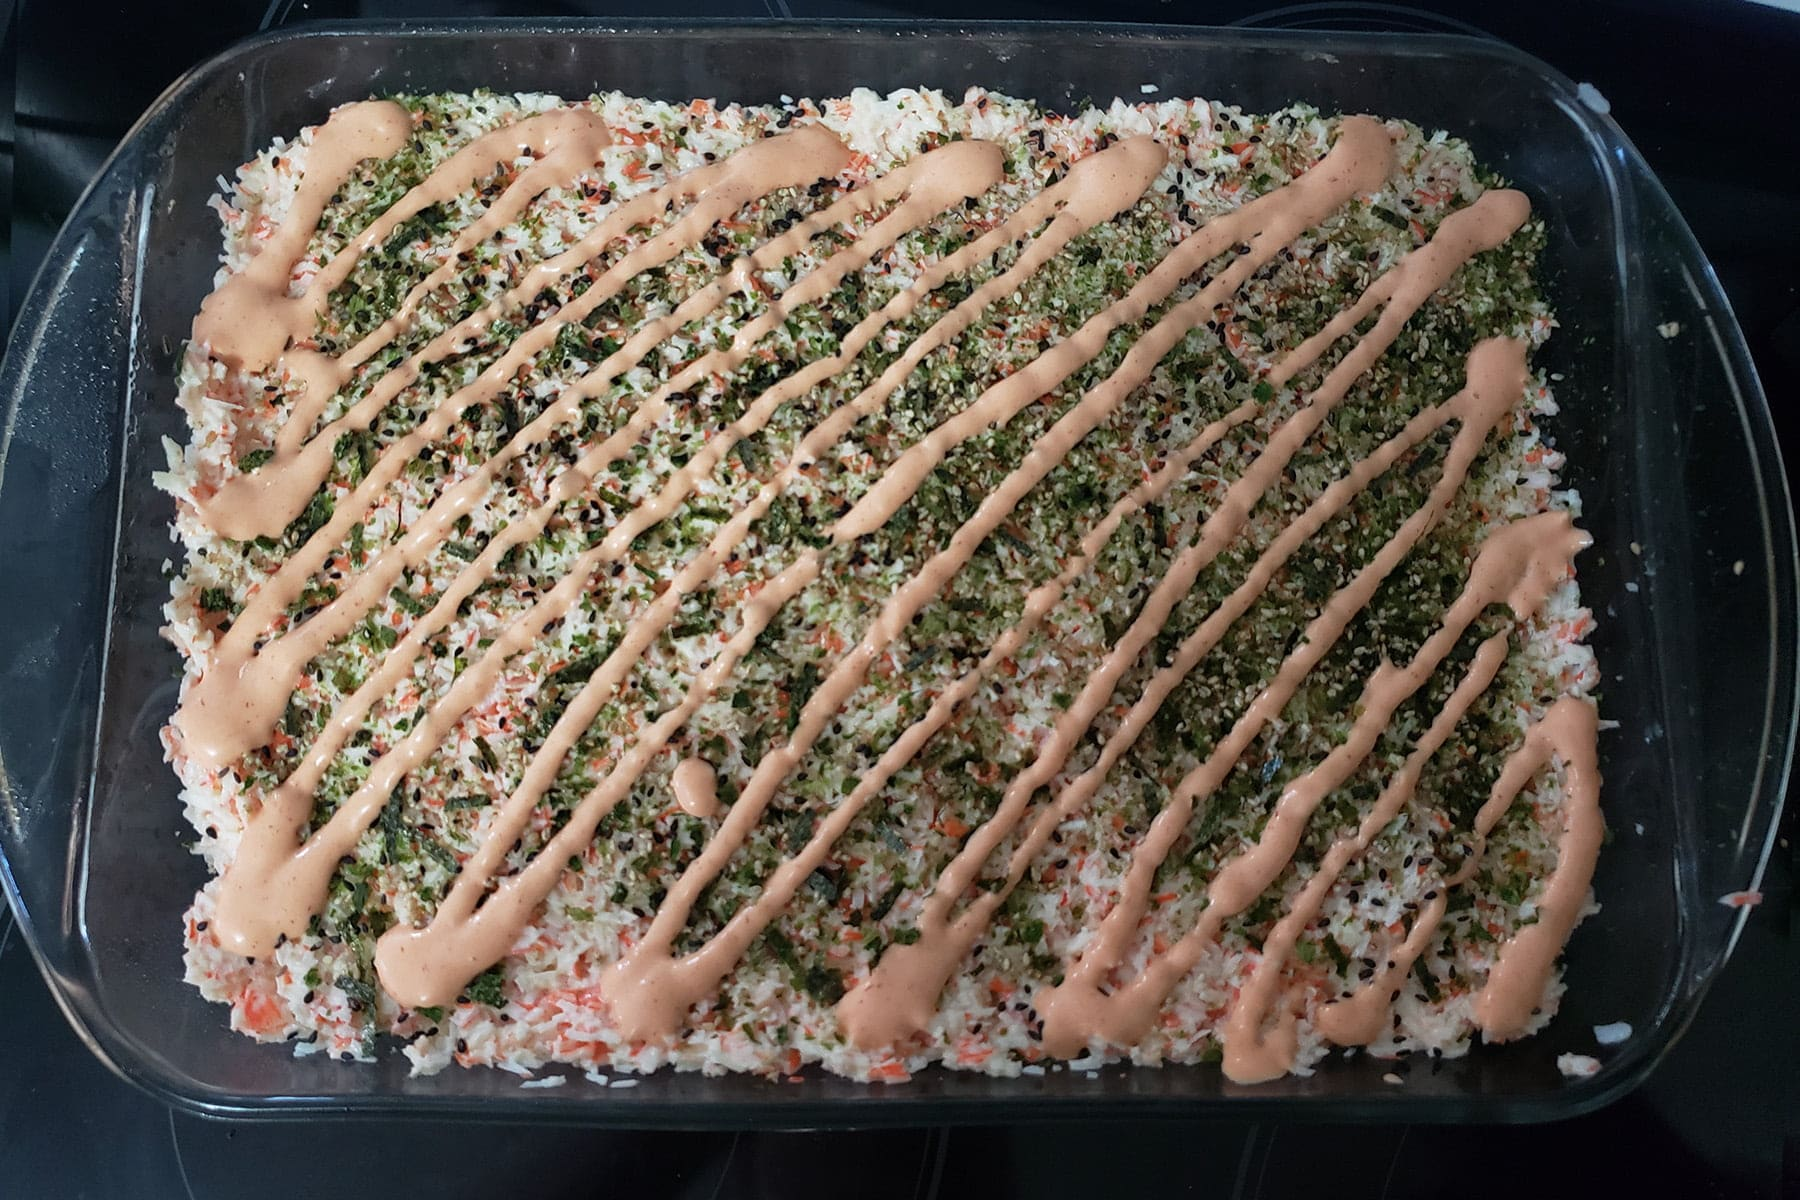 The unbaked sushi casserole is shown with a pink drizzle of spicy mayo all over it, in diagonal lines.